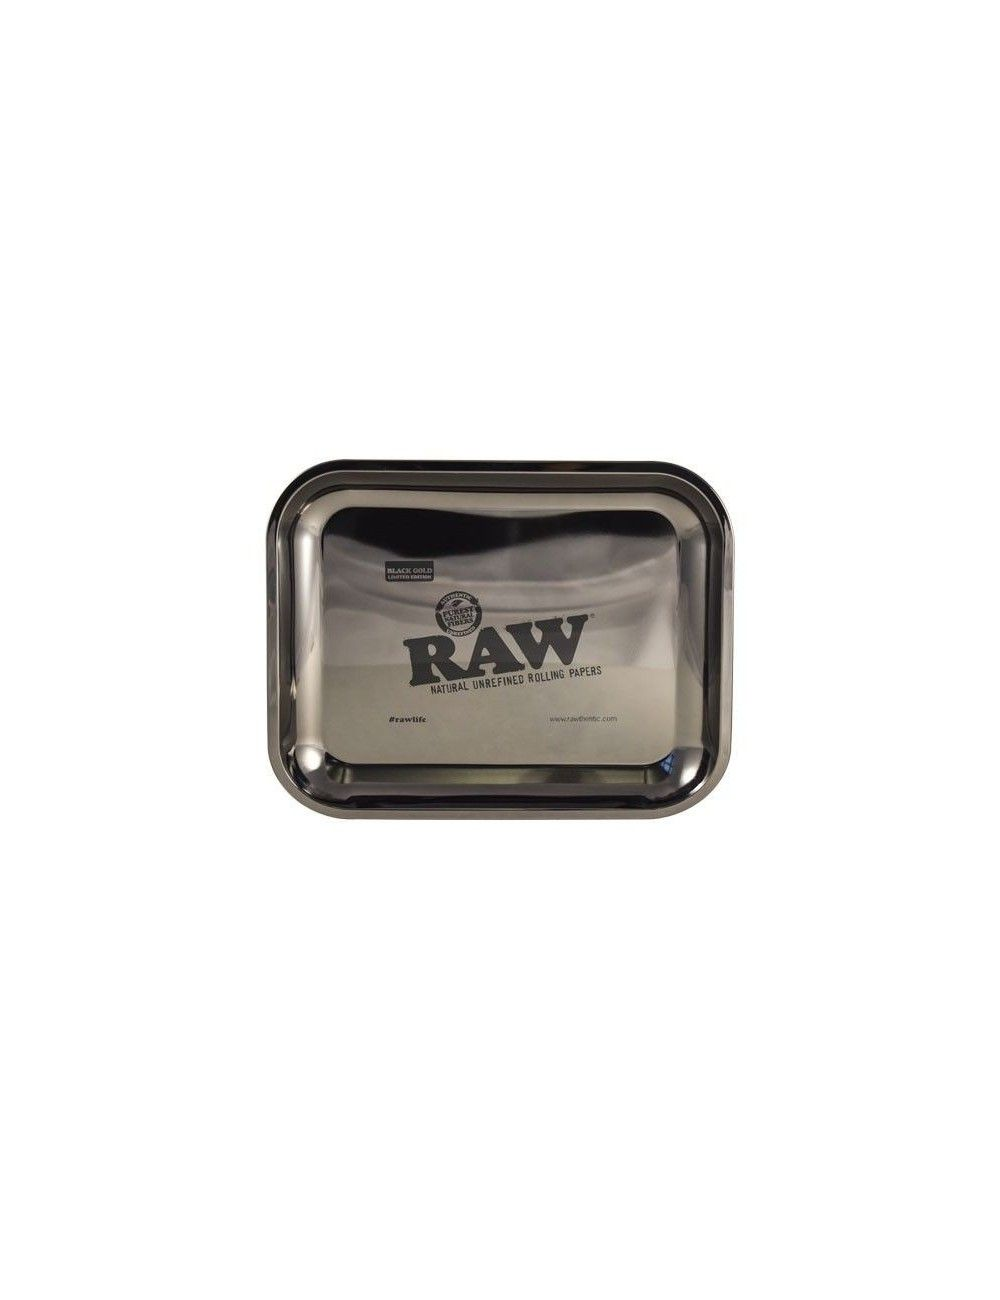 Bandeja RAW TRAY BLACK GOLD - LIMITED EDITION